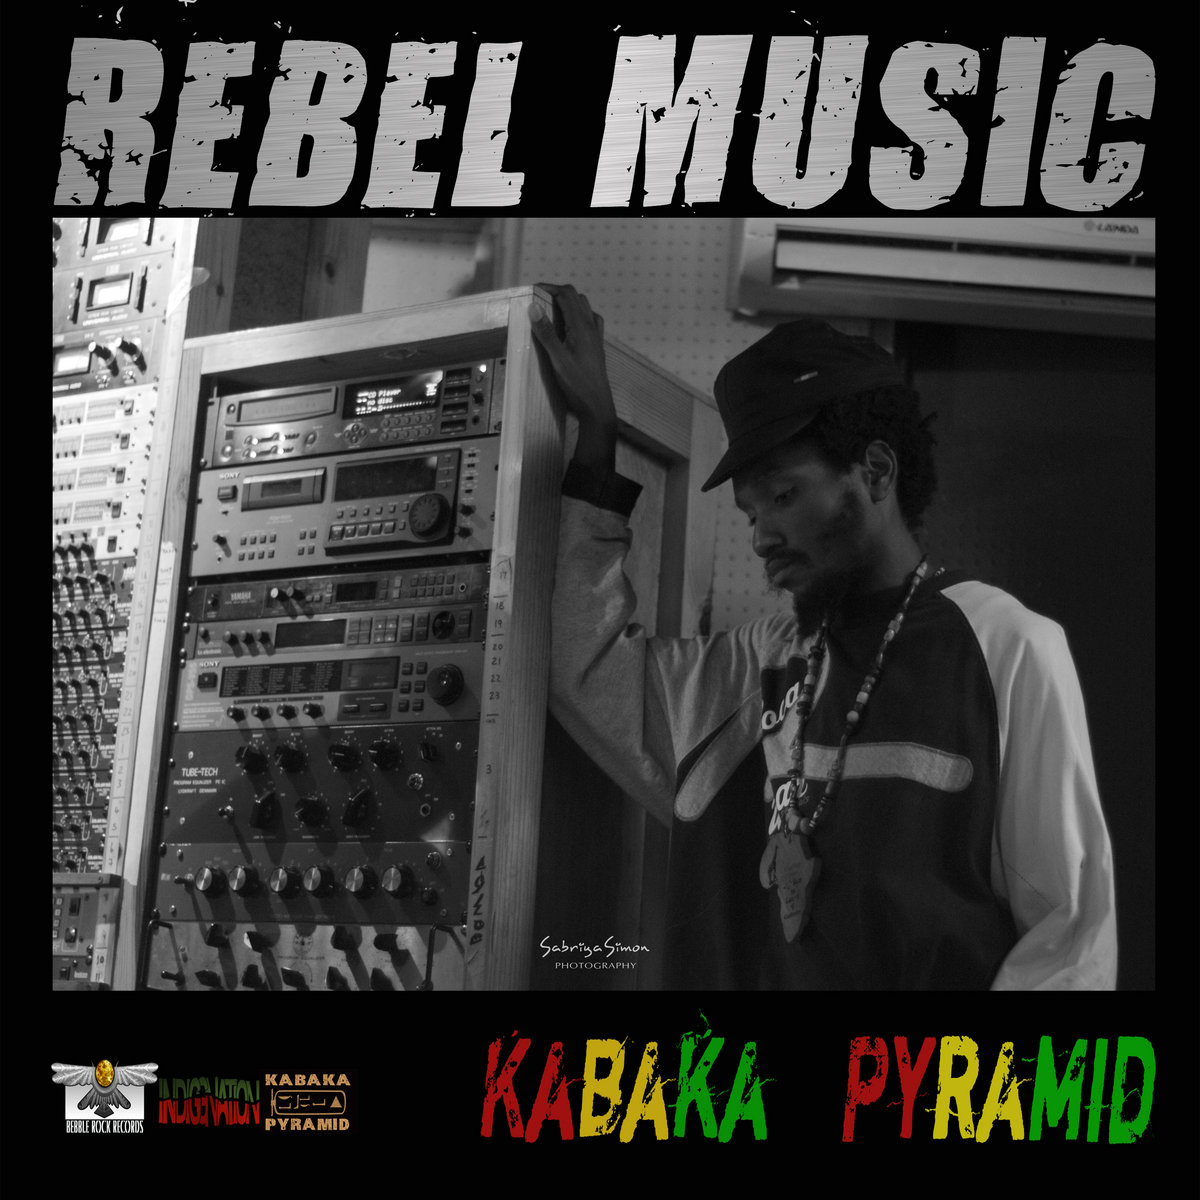 The Music Ep Rebel Music Ep Kabaka Pyramid